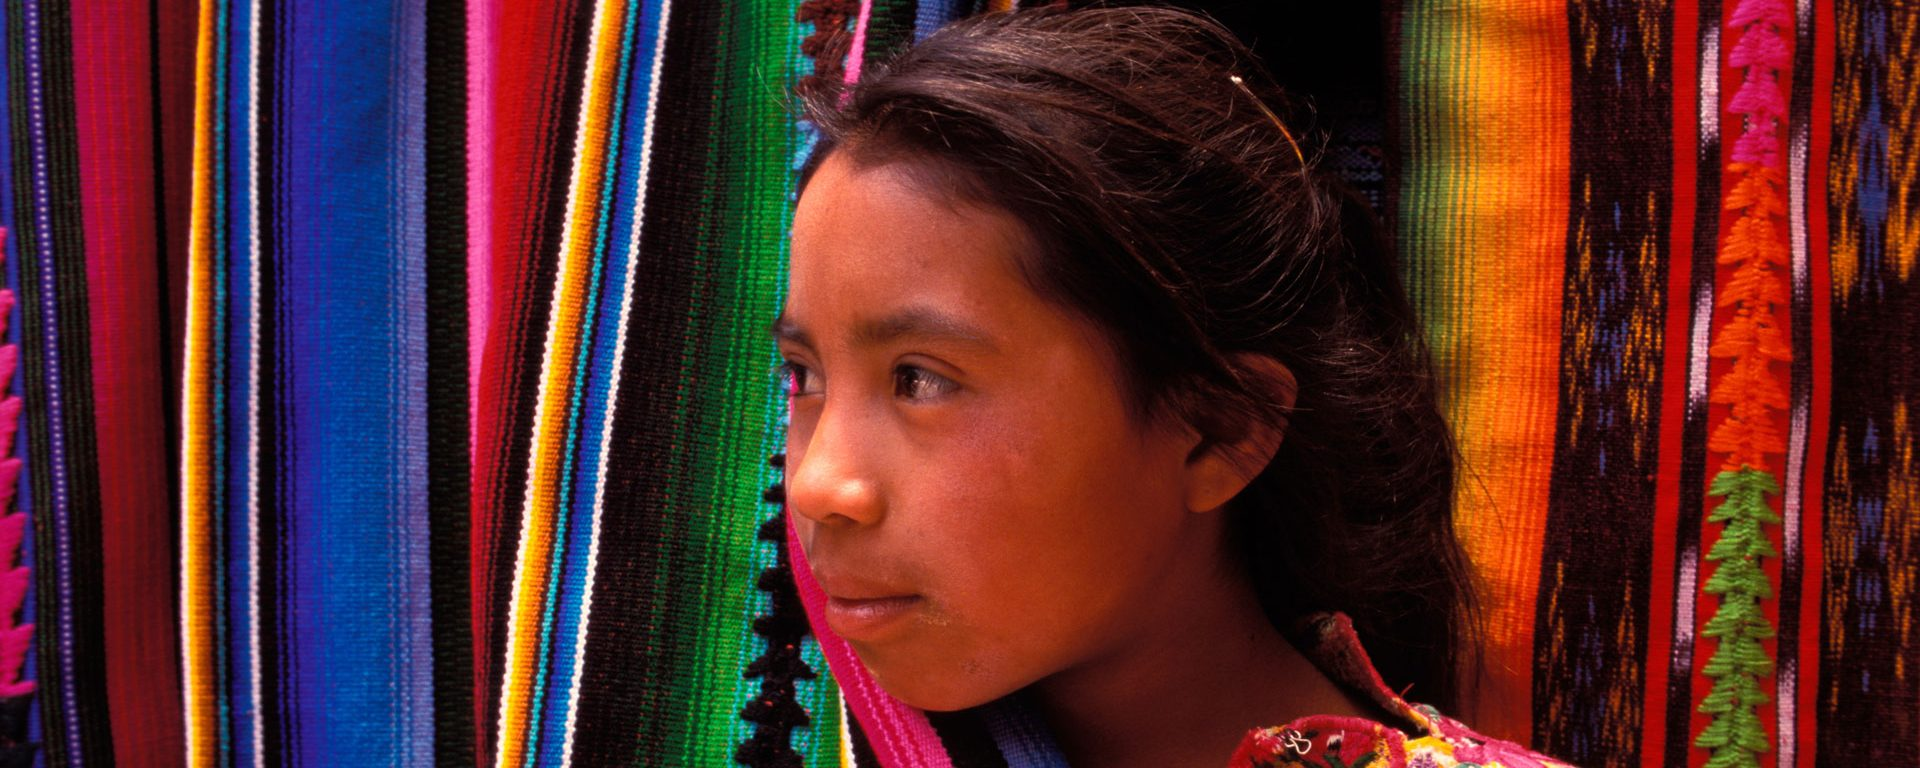 A girl peaks out from behind a colorful hanging blanket in Chichicastenango, Guatemala